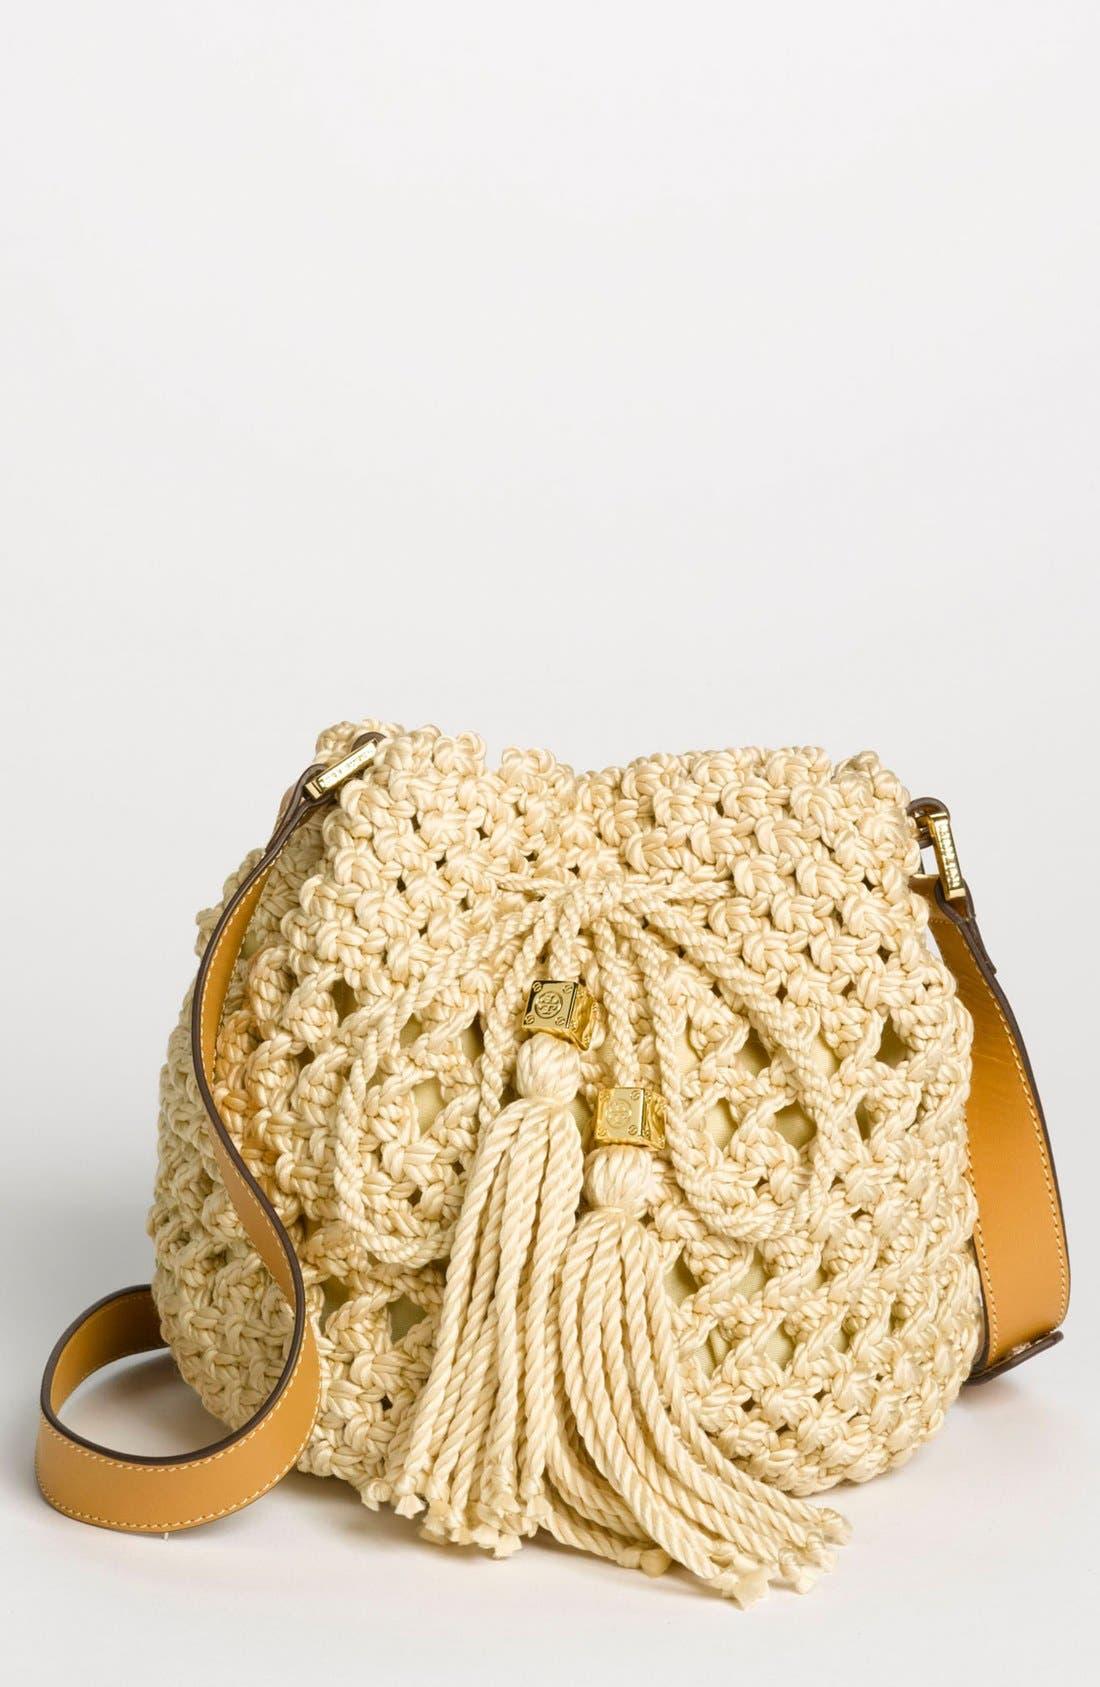 Alternate Image 1 Selected - Tory Burch 'Dawson - Small' Crocheted Bucket Bag